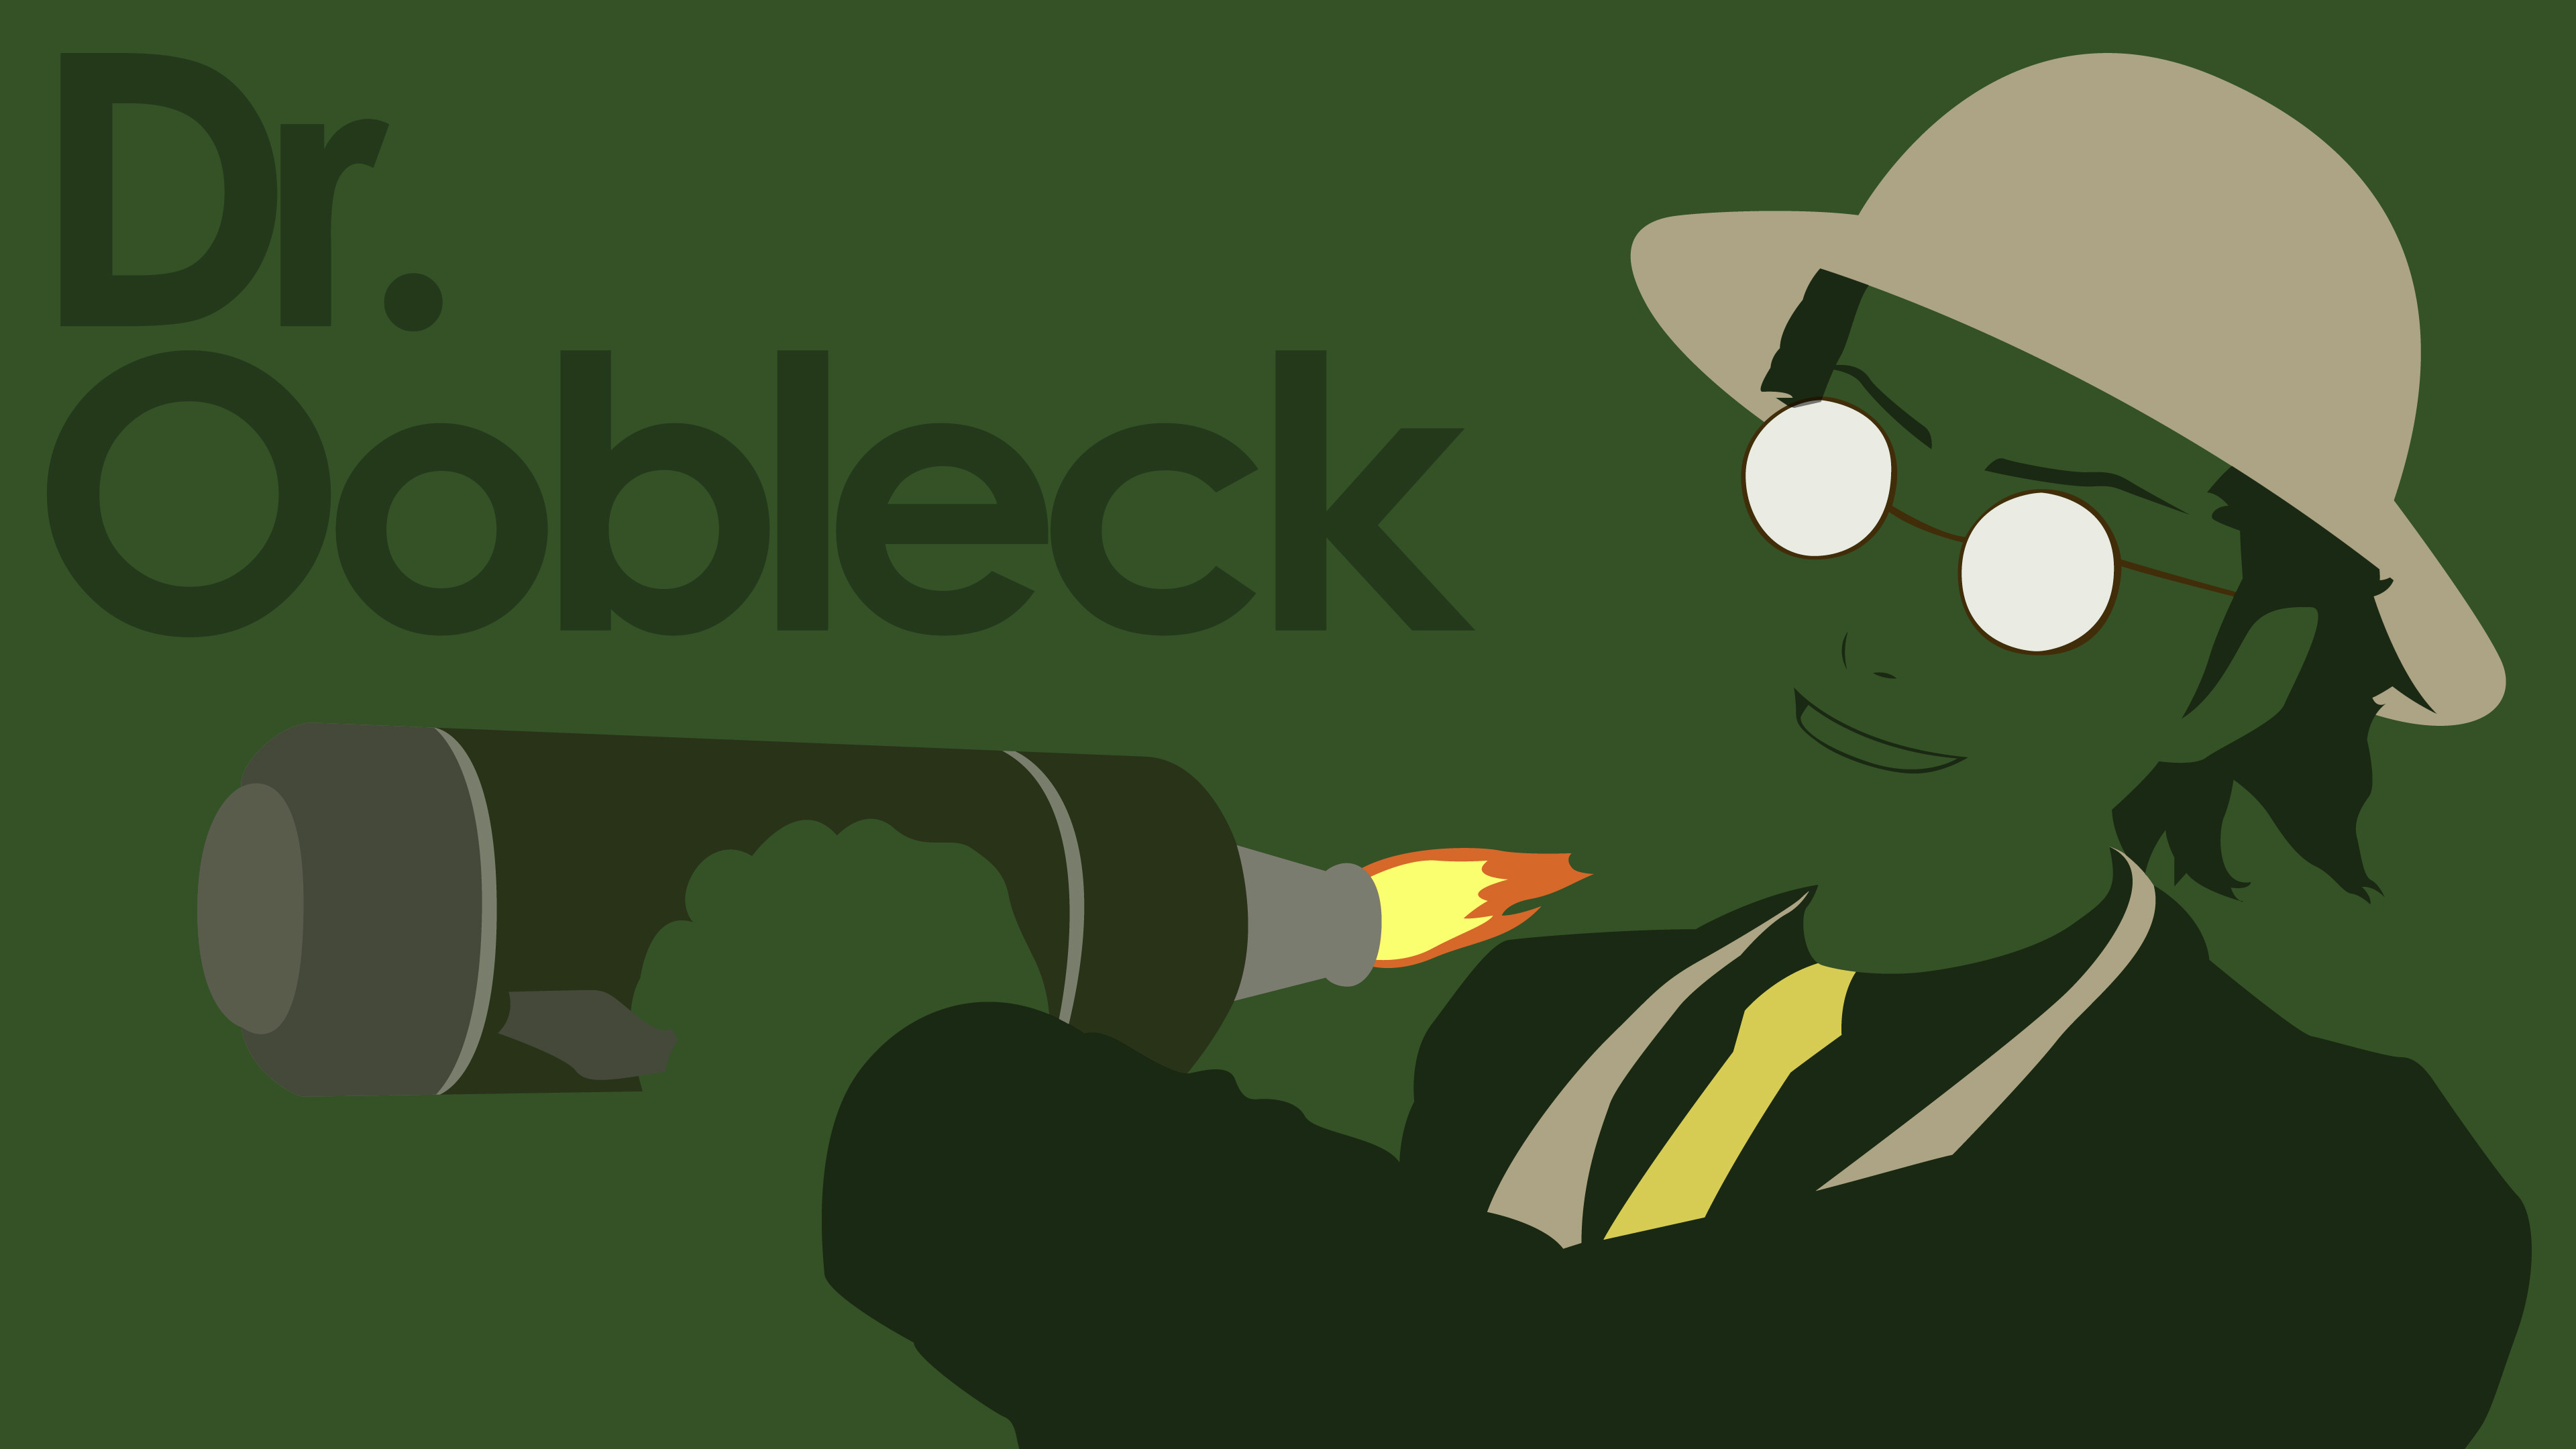 3840x2160 Dr.Oobleck Wallpaper by DanTherrien101 Dr.Oobleck Wallpaper by  DanTherrien101